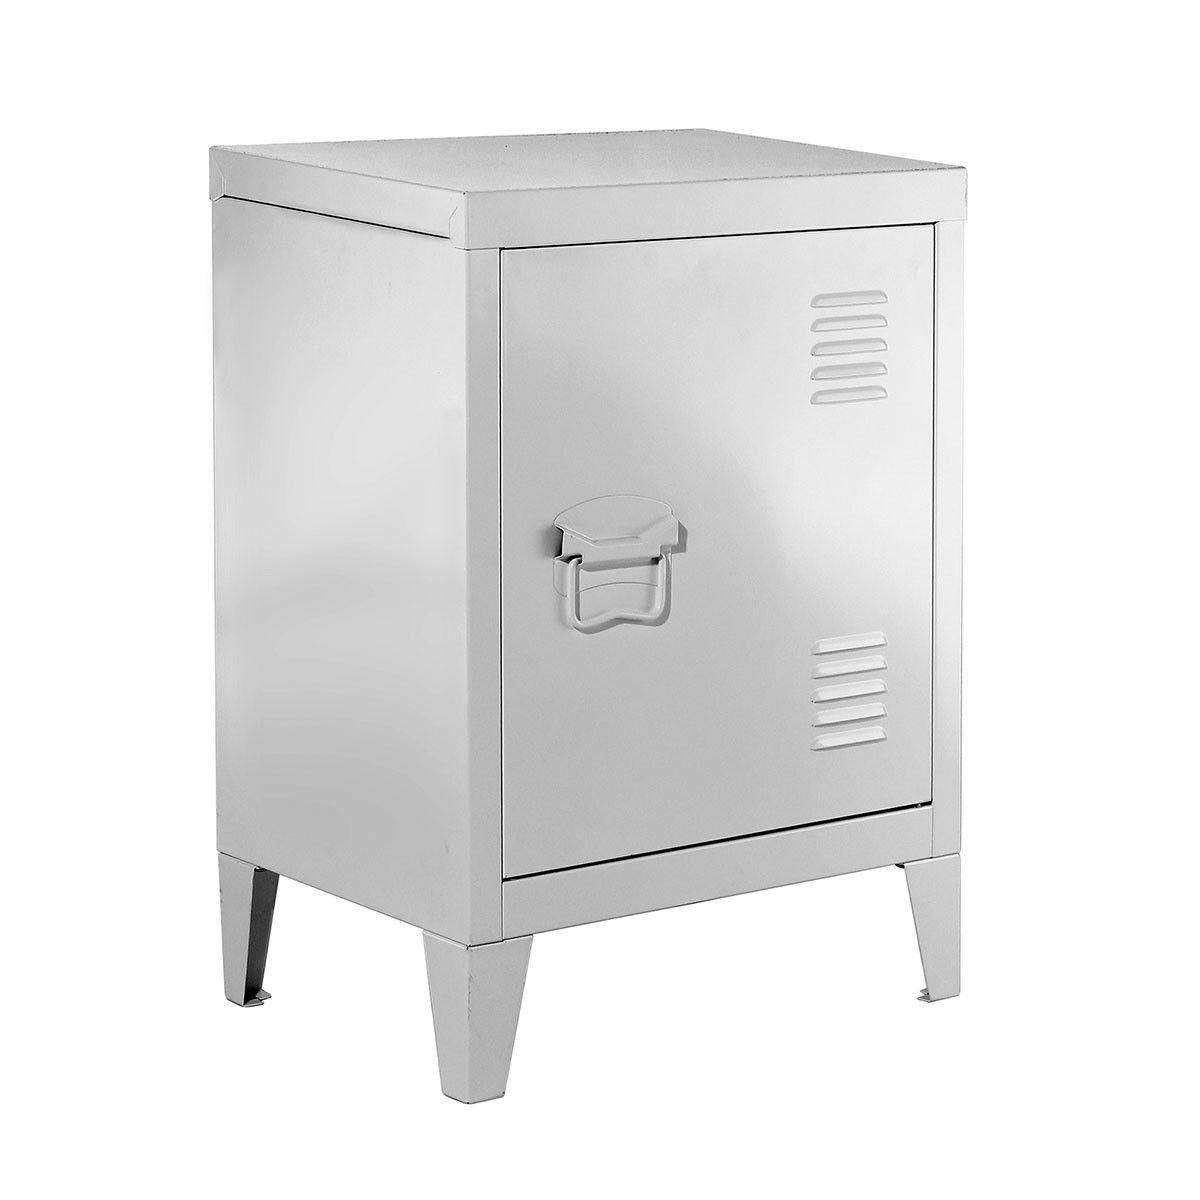 Petite Armoire En Metal Blanche Taille Taille Unique Armoire En Pin Armoire Rangement Armoire